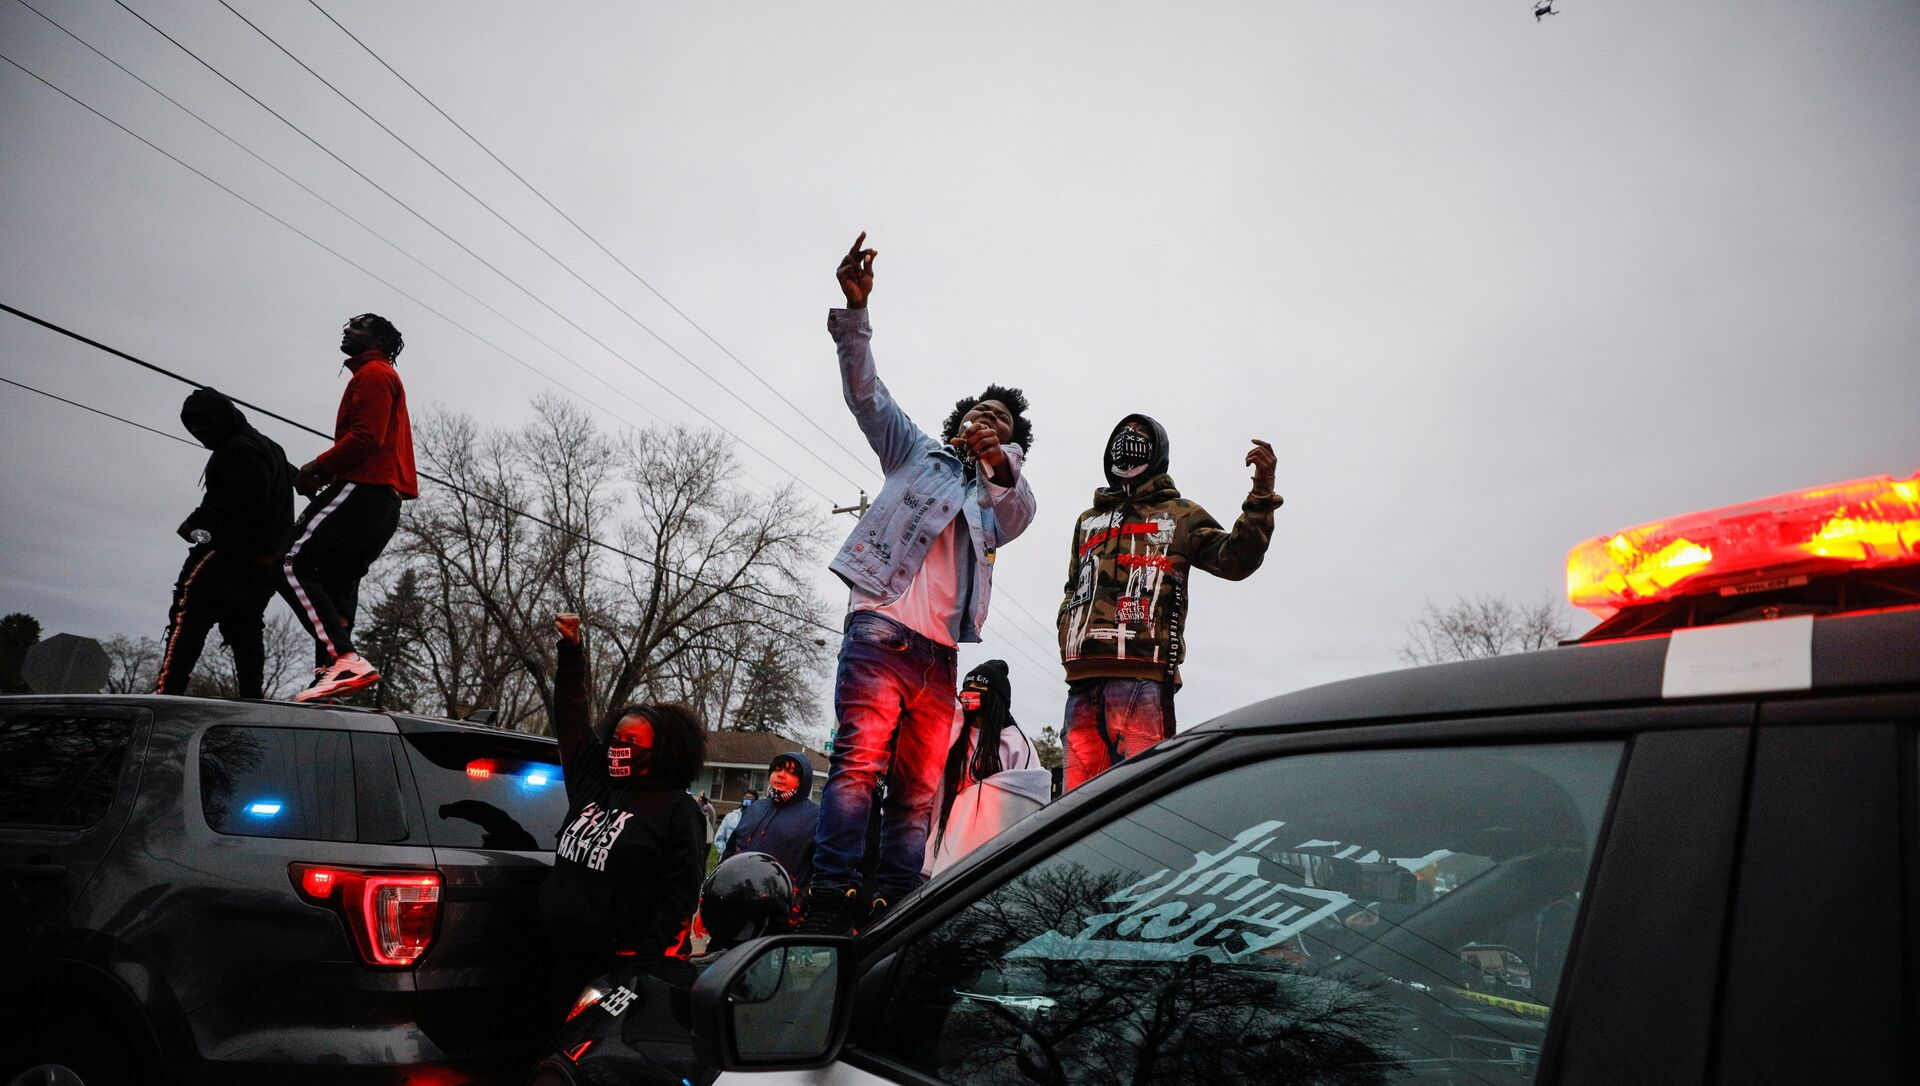 Demonstrators stand on a police vehicle during a protest after police allegedly shot and killed a man, who local media report is identified by the victim's mother as Daunte Wright, in Brooklyn Center, Minnesota, U.S. - Sputnik Italia, 1920, 13.04.2021